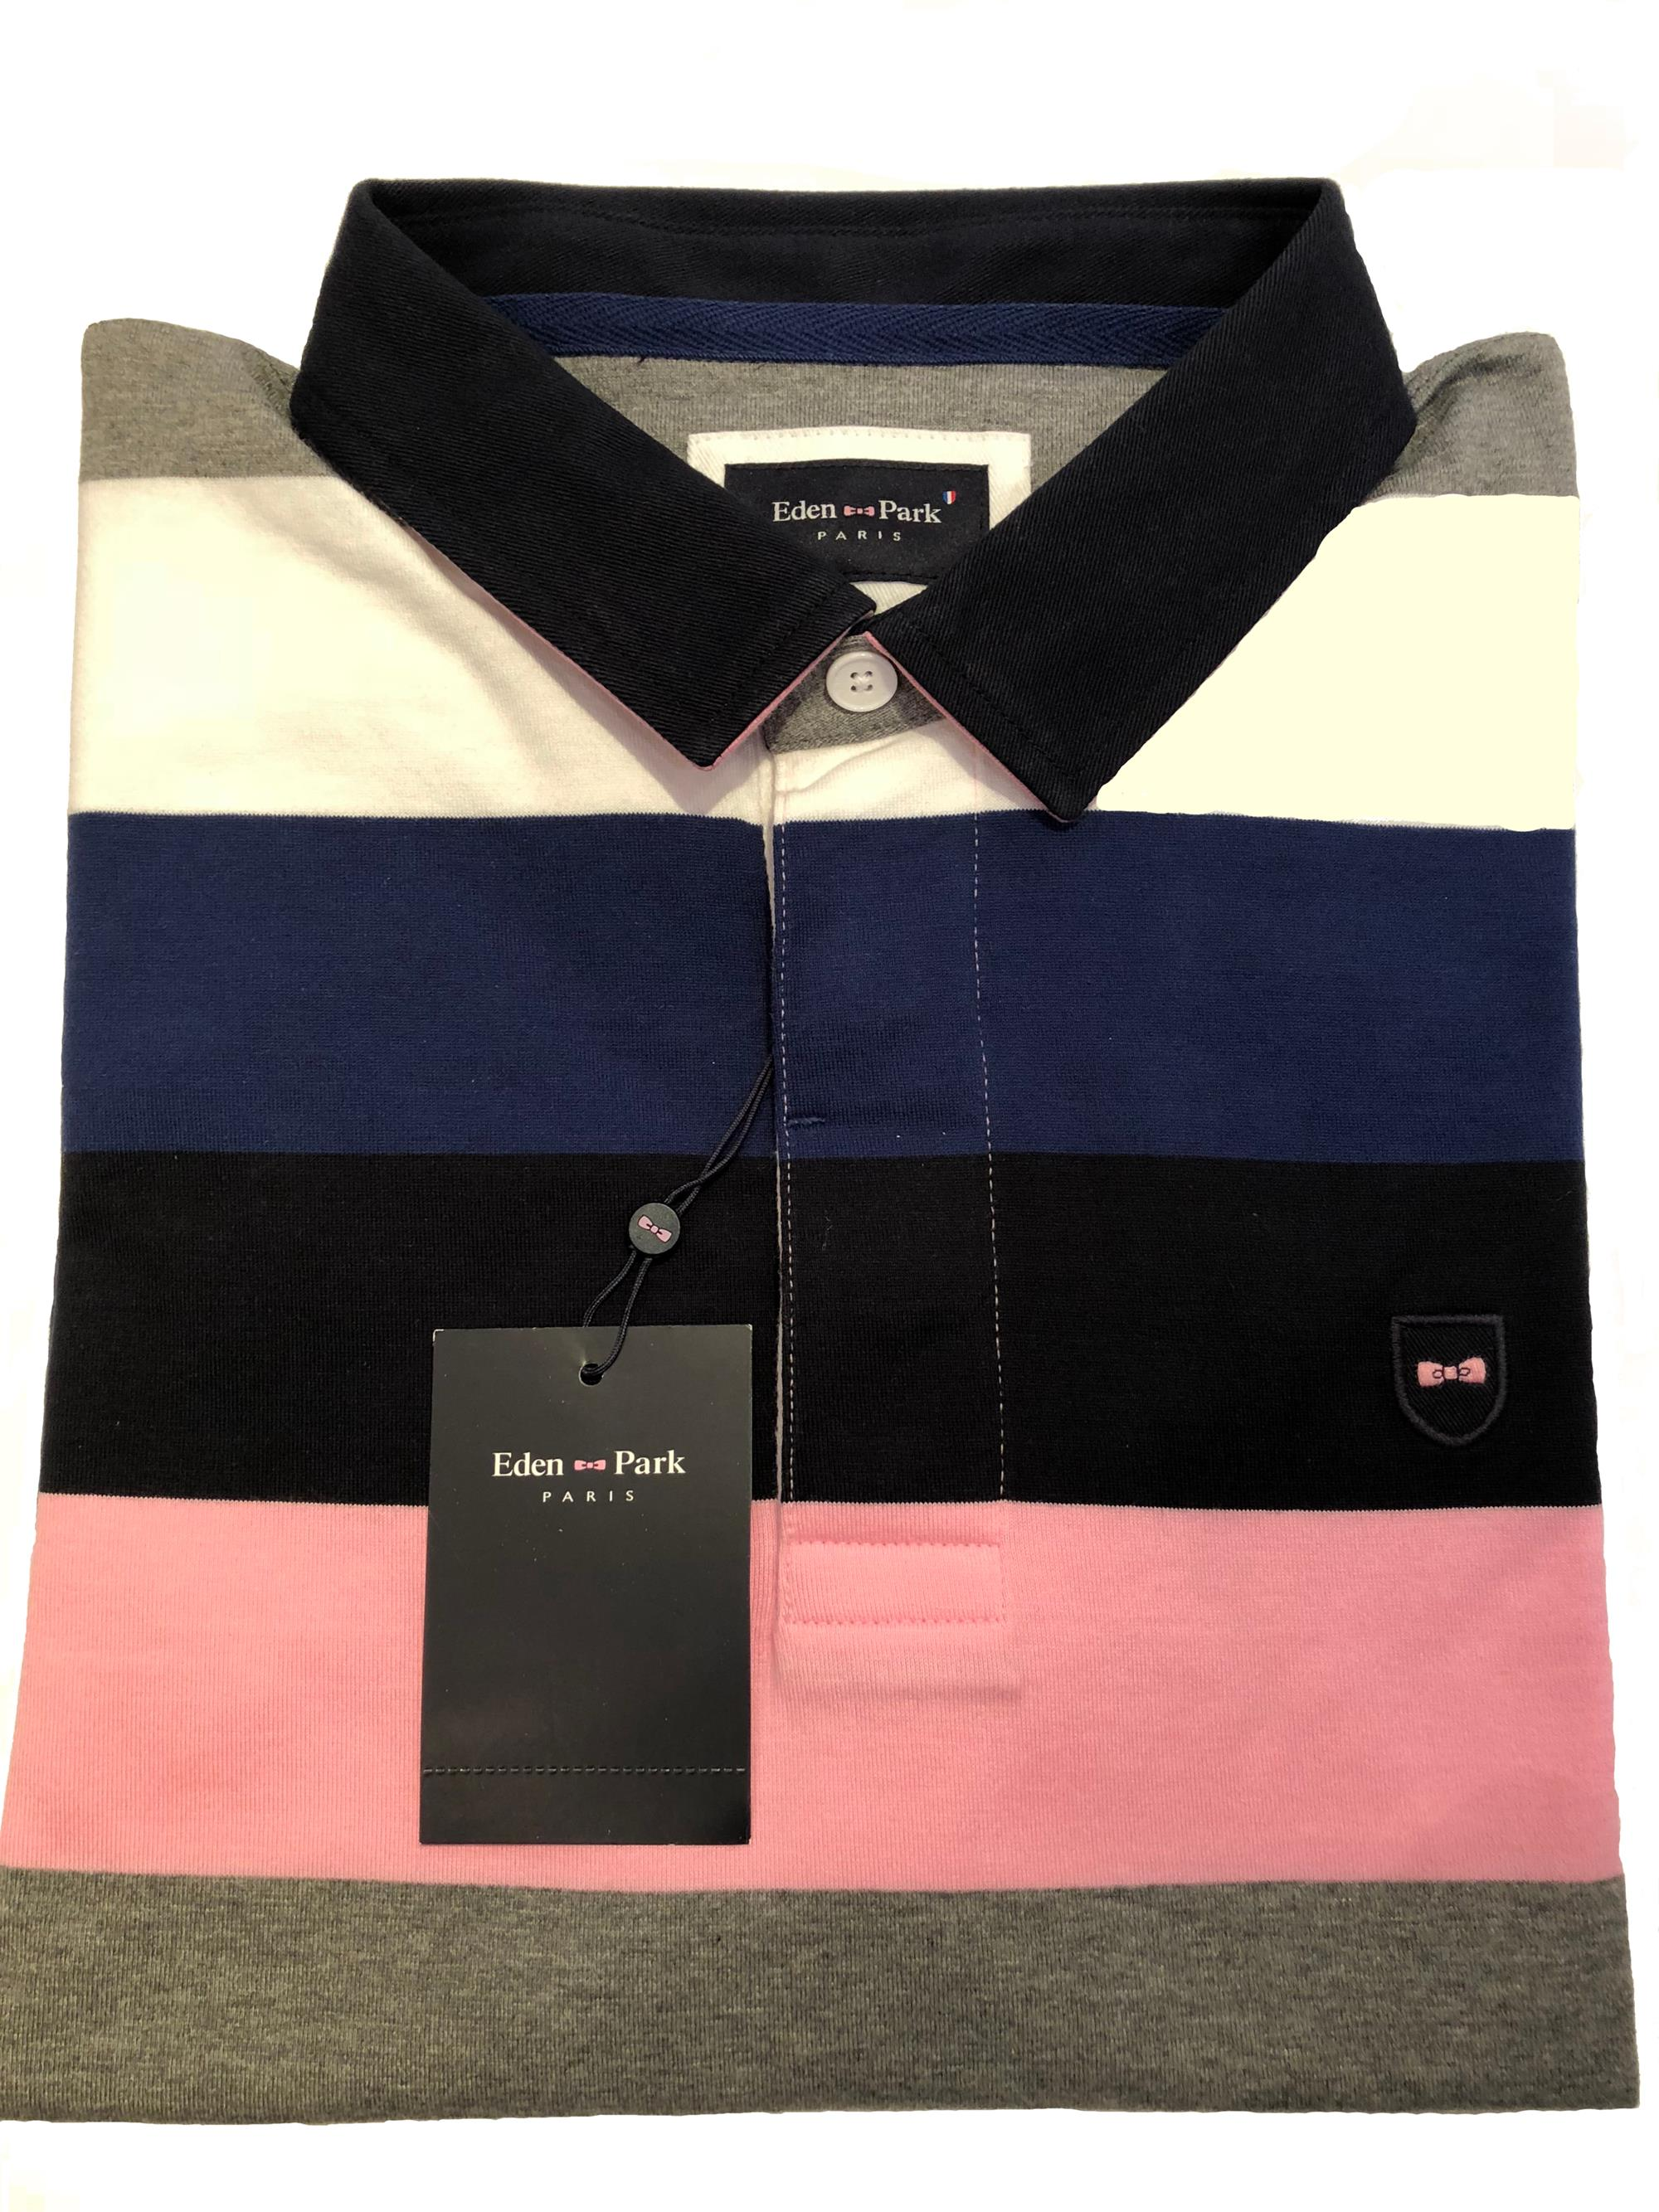 striped jersey style polo shirt